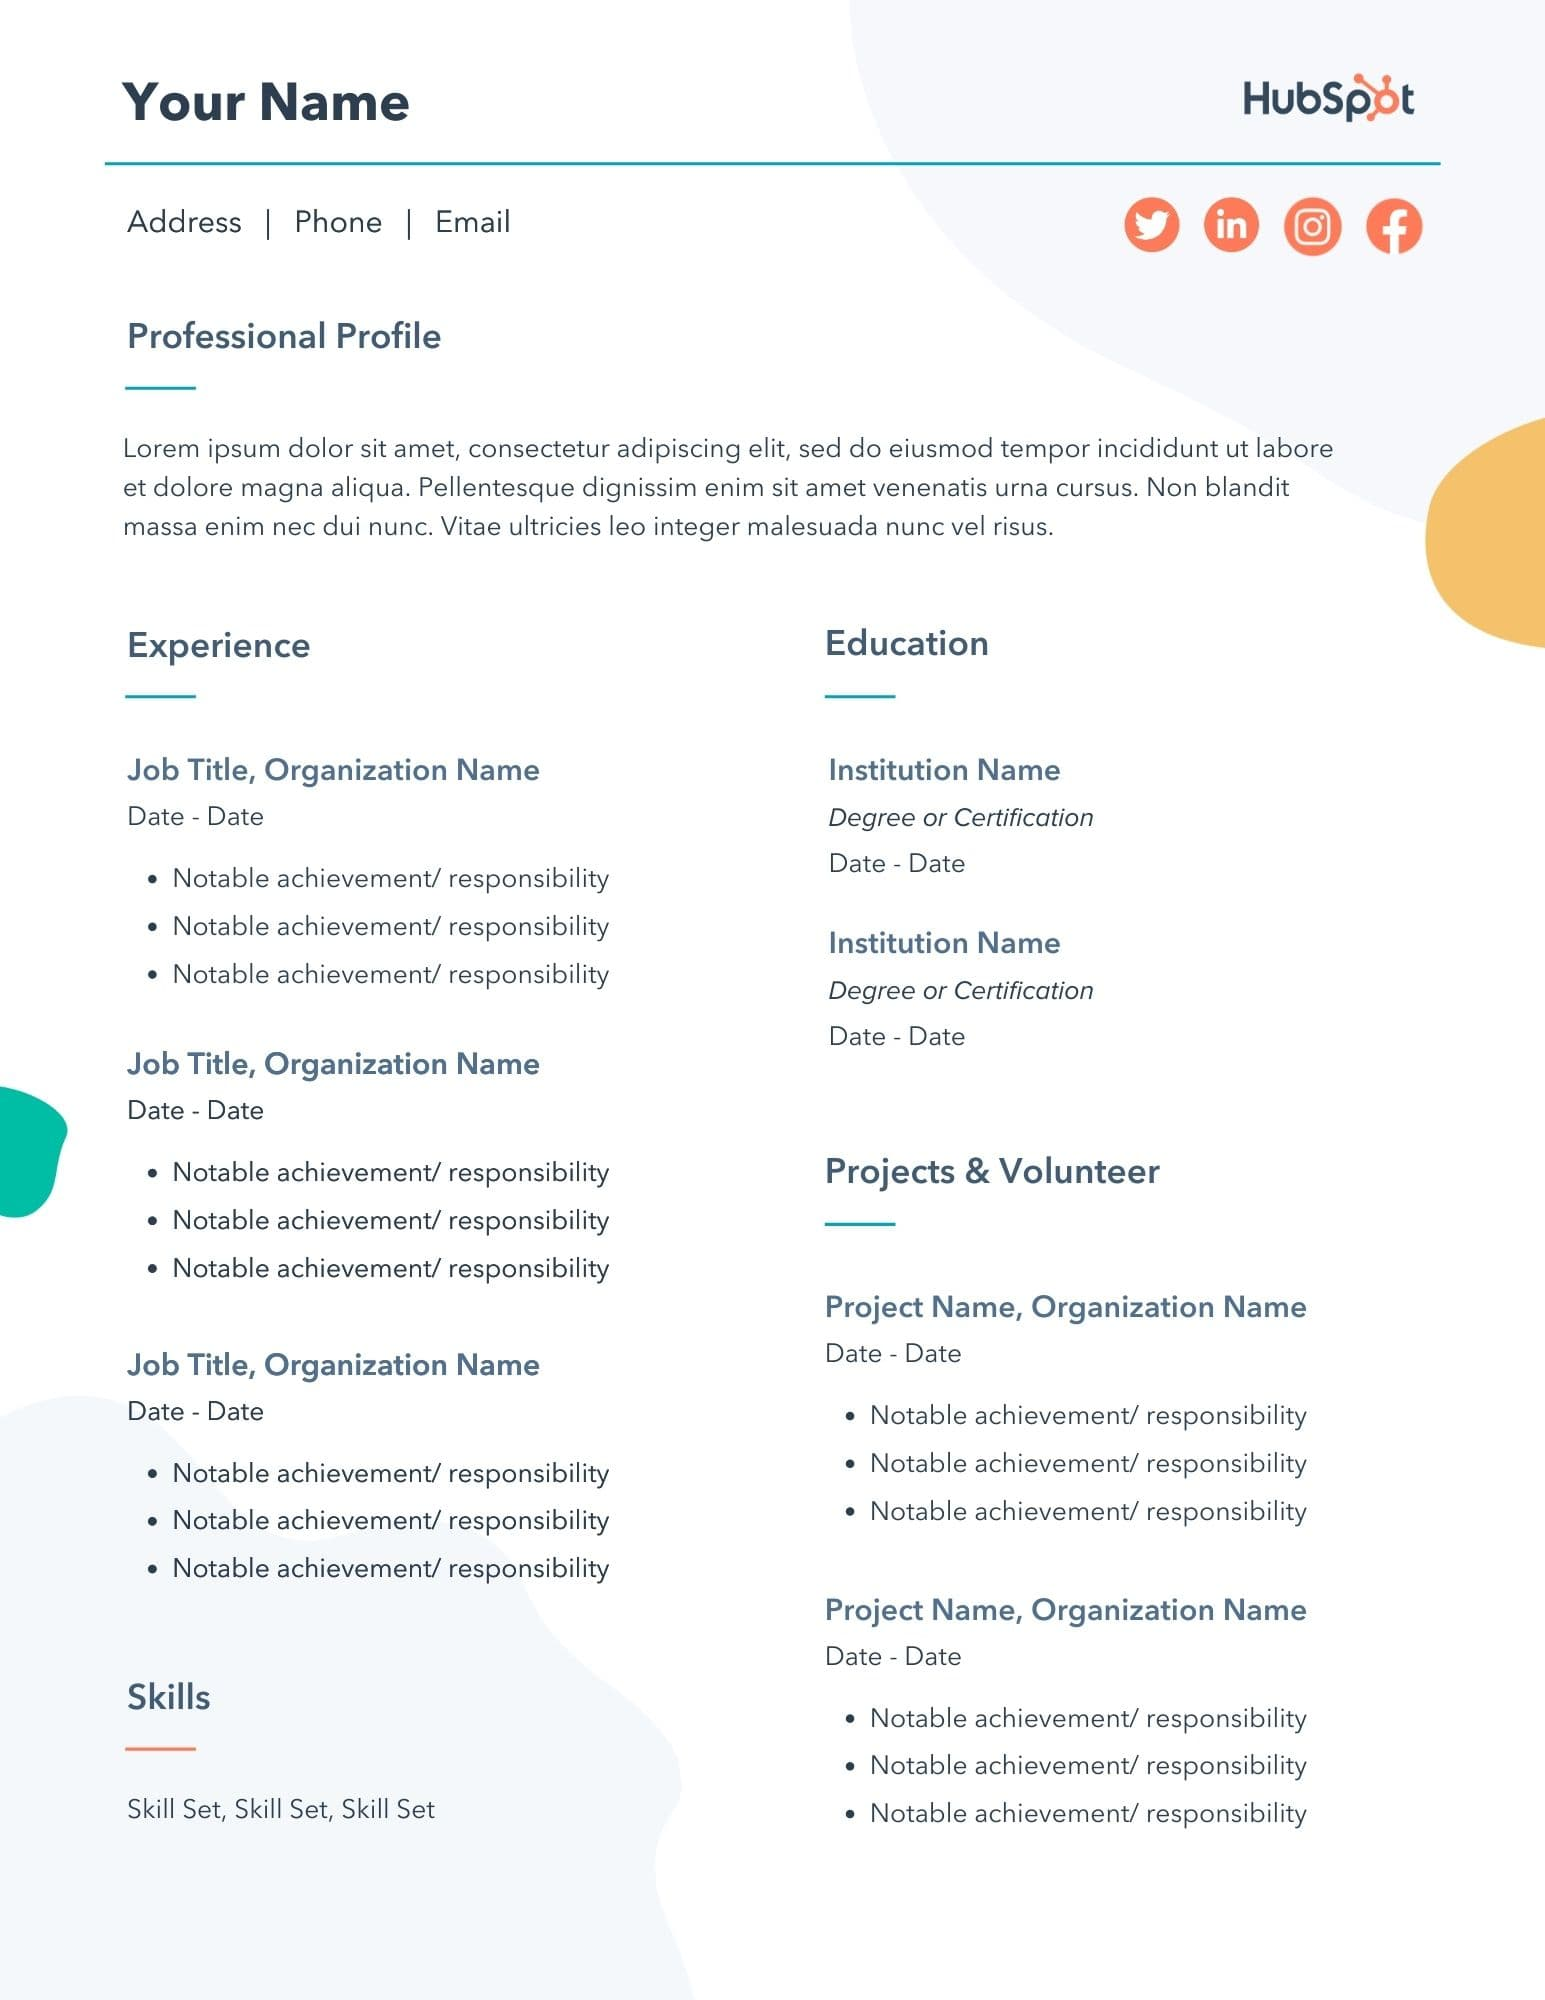 free resume templates for microsoft word to make your own education format template Resume Resume Education Format